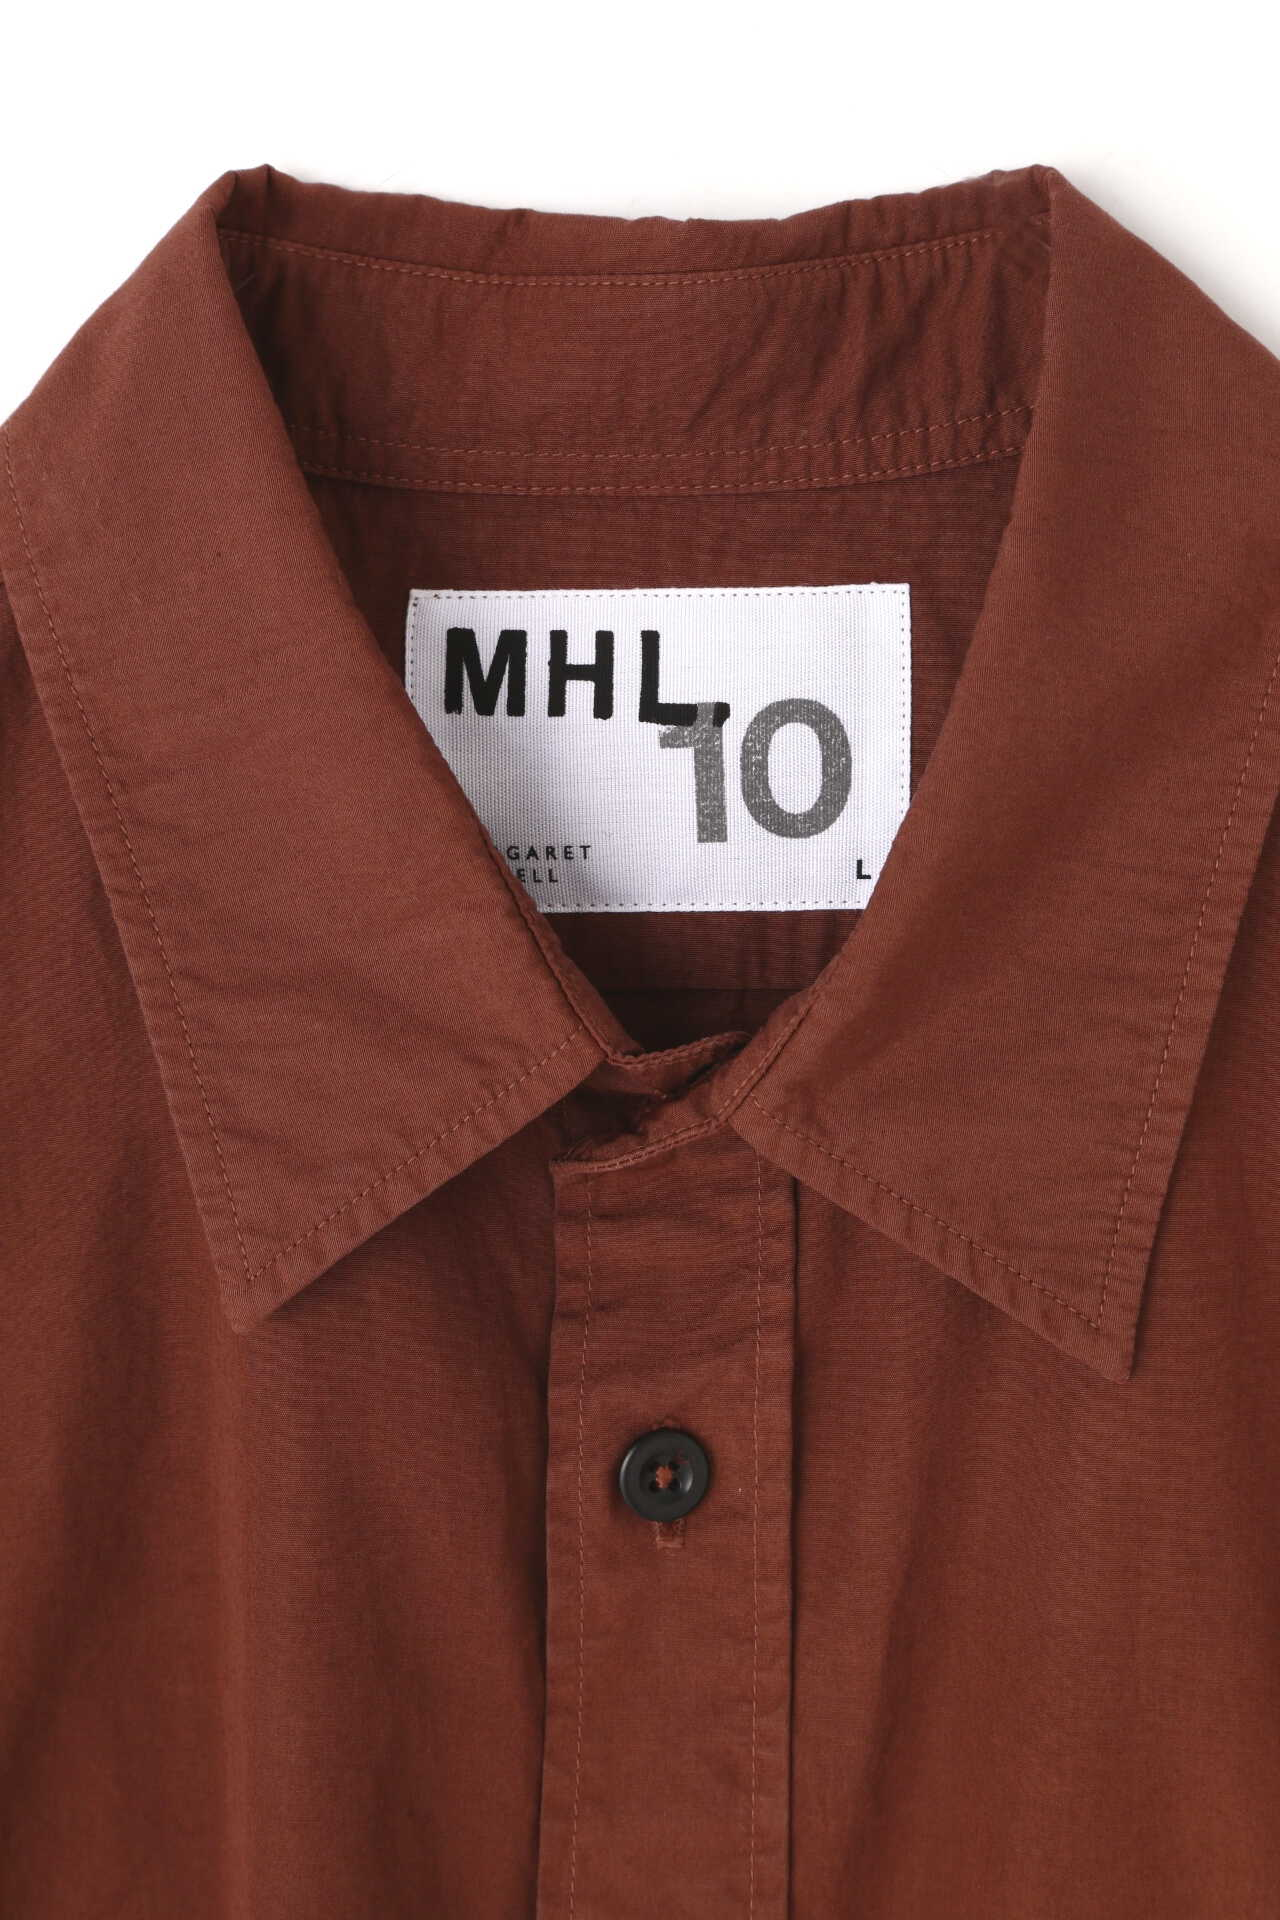 COMPACT COTTON POPLIN(MHL 代官山限定)6